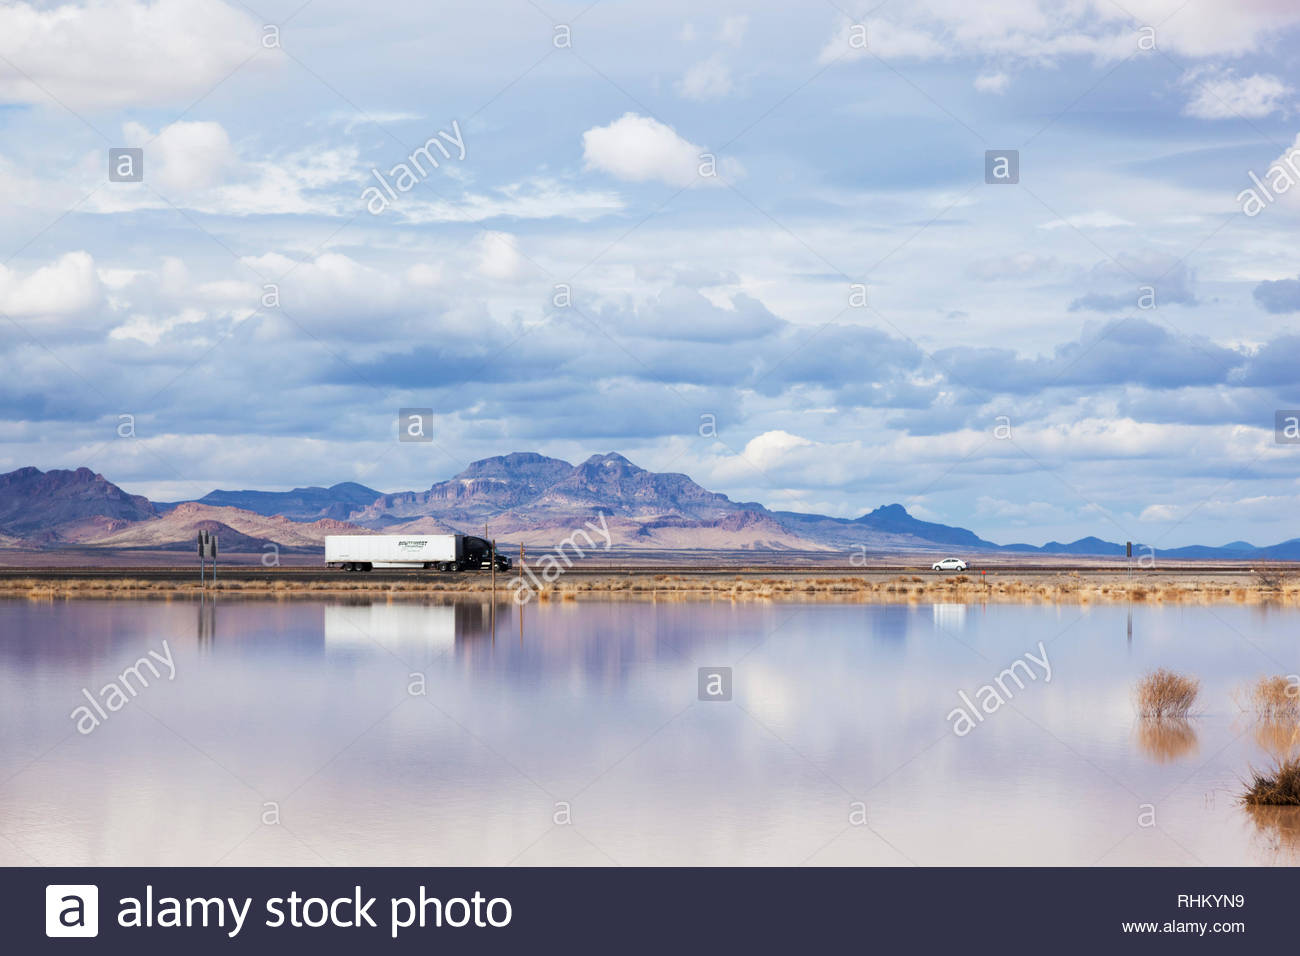 Traffic on Interstate 10 in southwestern New Mexico, USA, reflected in water standing in playa - Stock Image